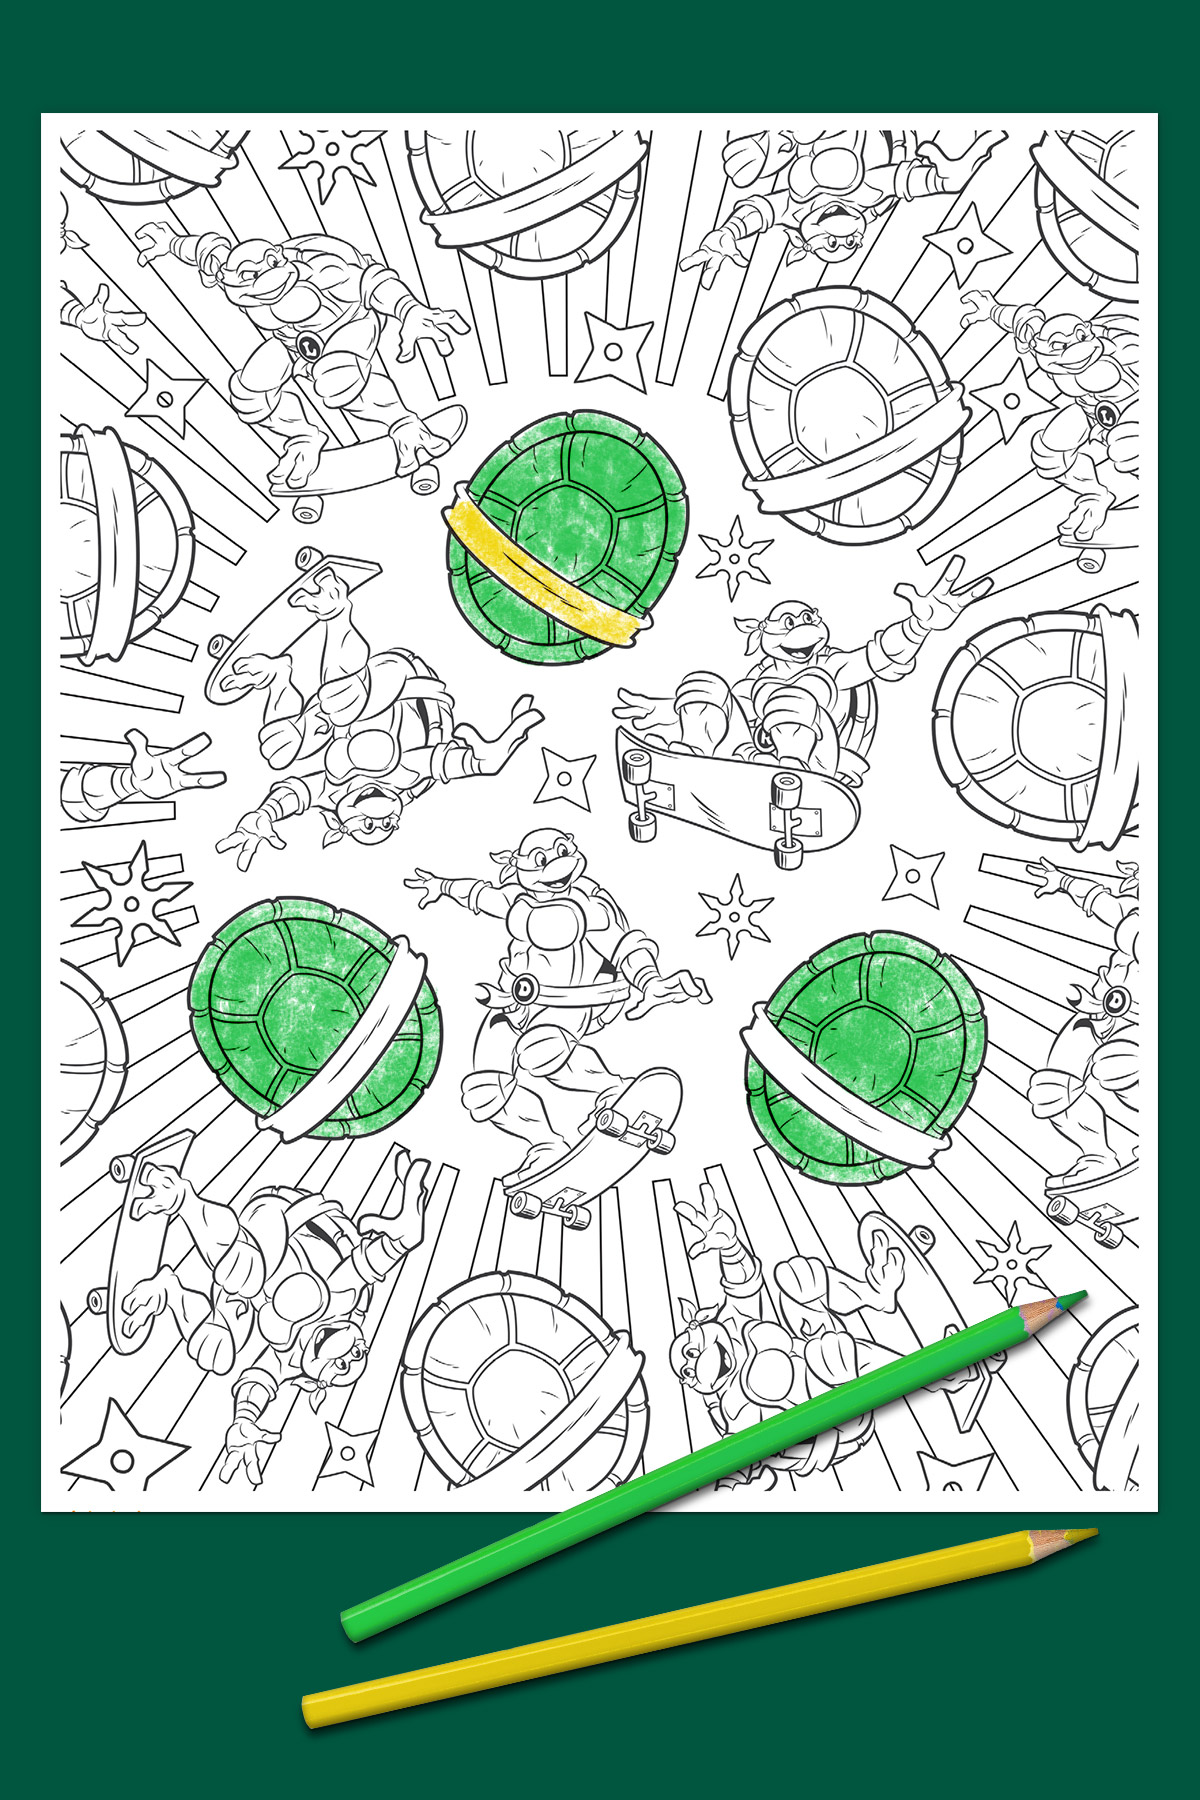 TMNT Adult Coloring Page | Nickelodeon Parents